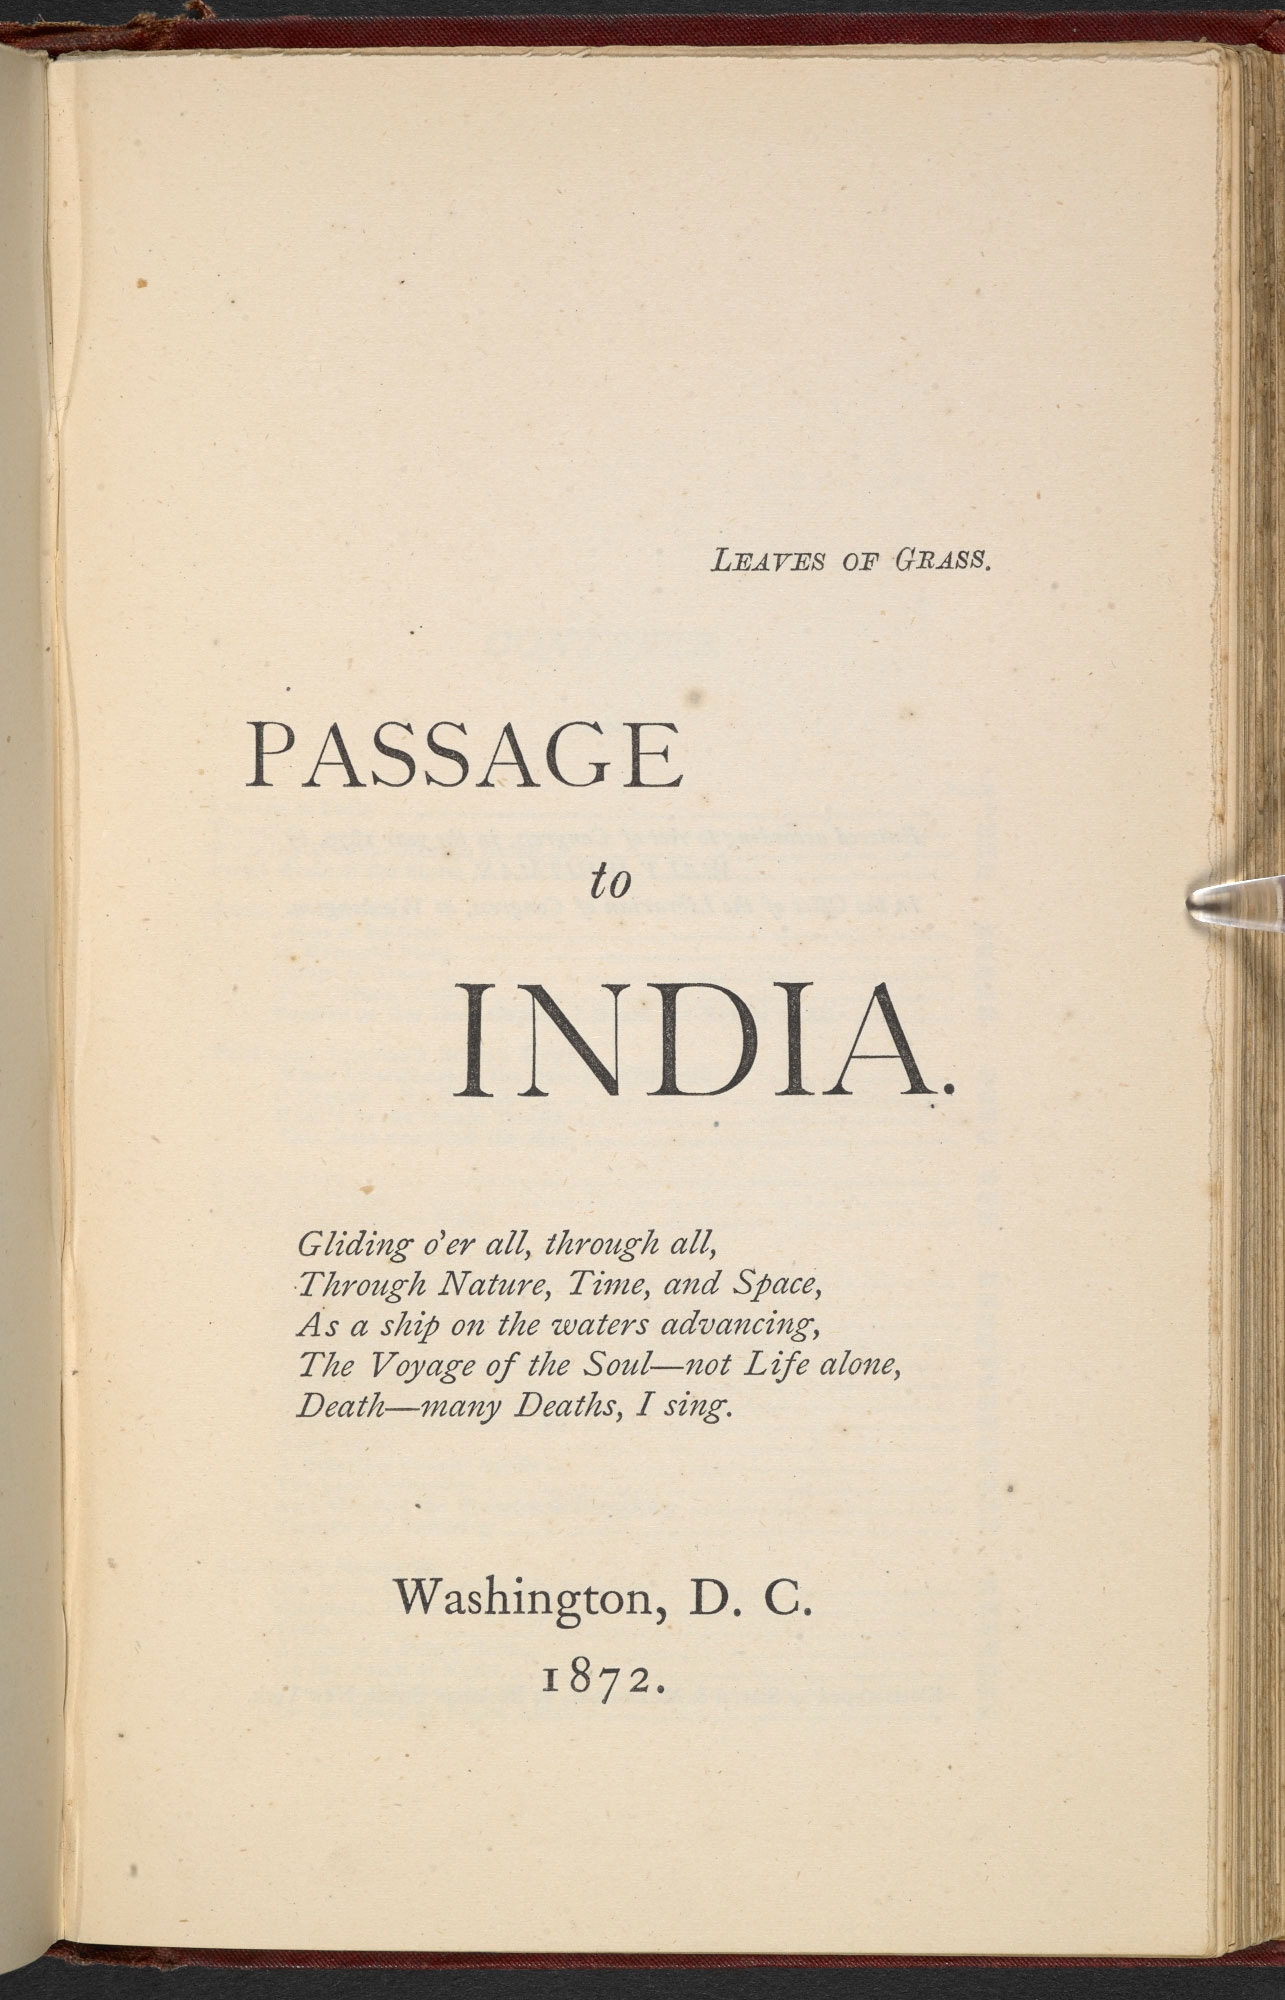 analysis of a passage to india